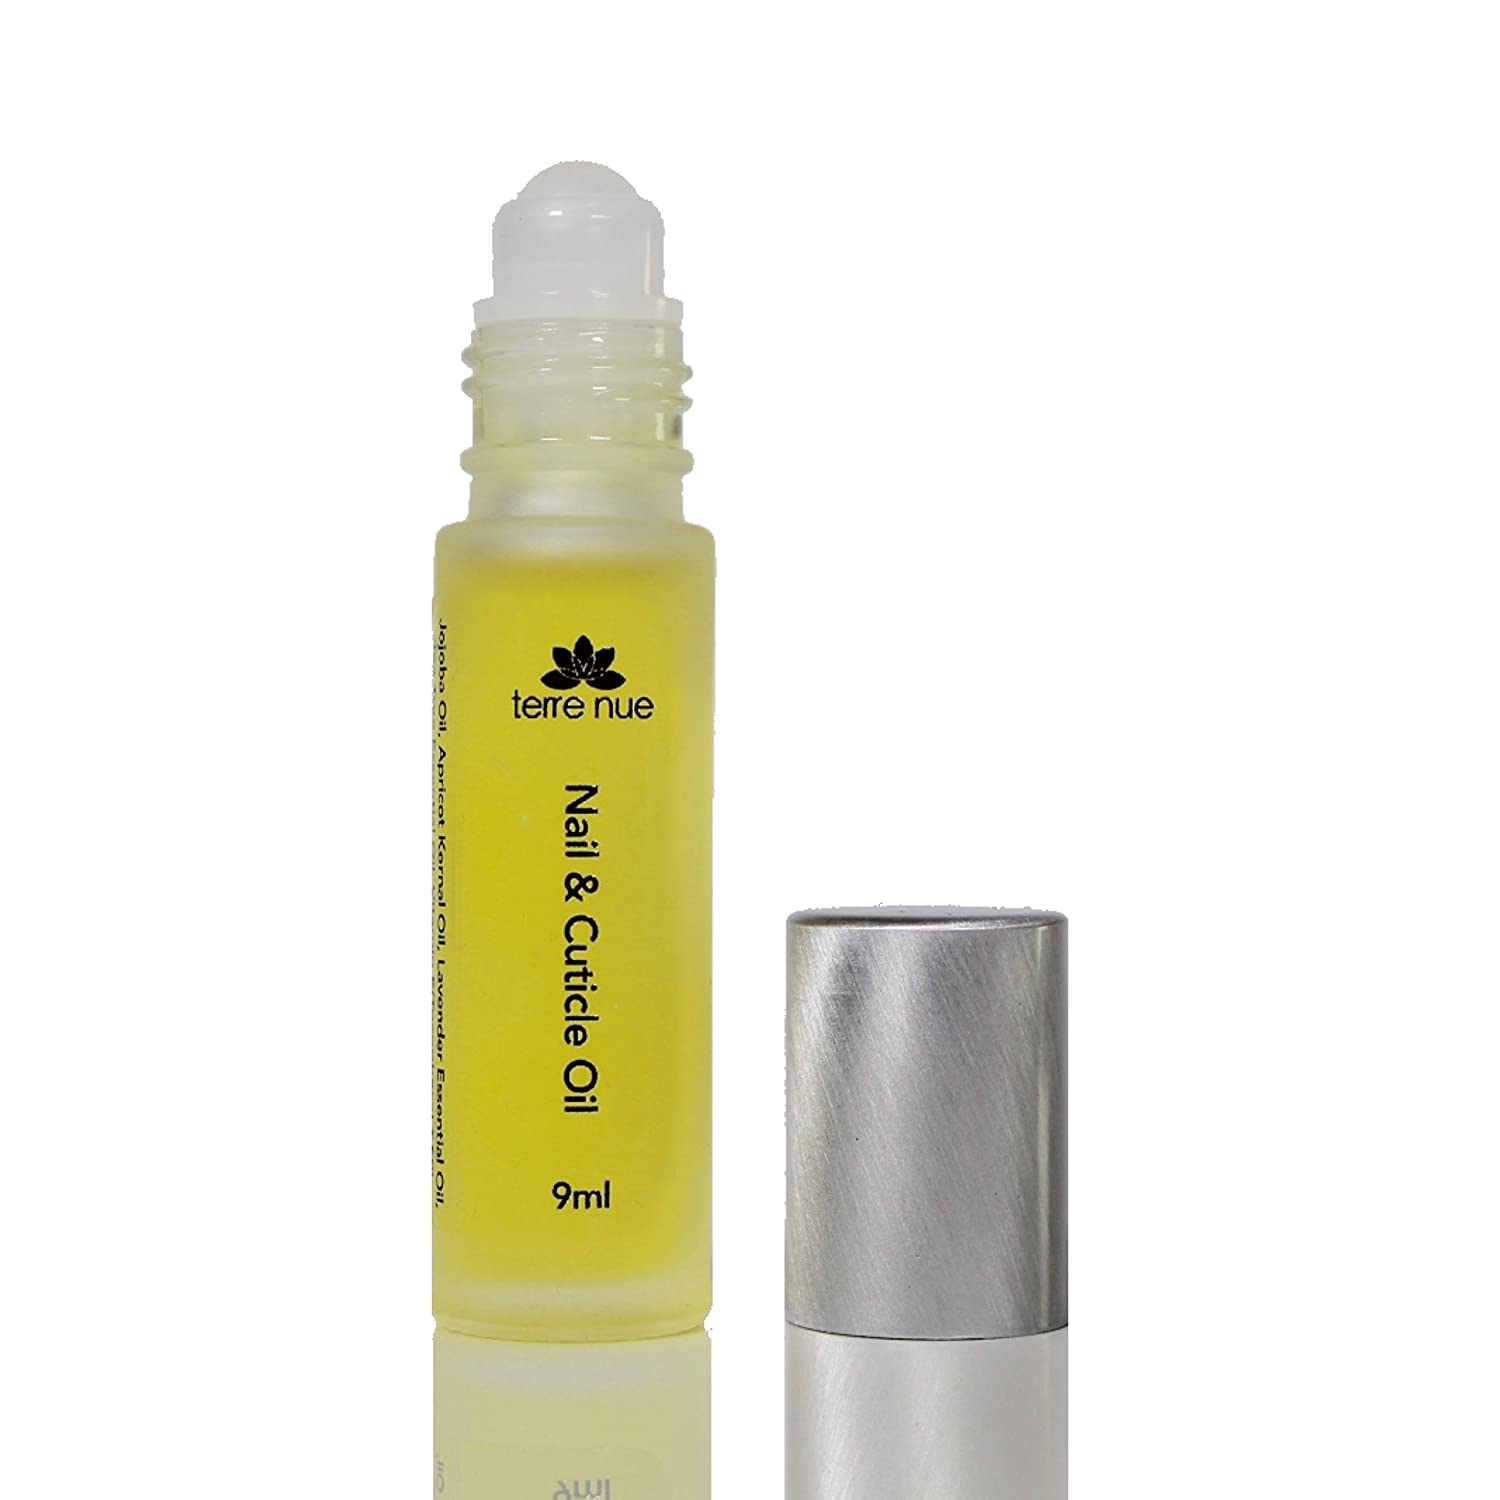 Cuticle & Nail Oil | Strengthens Nail & Repairs Damage | Vitamin E Enriched | Heals Cracked, Brittle, Dry Finger | Easy Roll on Applicator | All Natural & Vegan | Free Cuticle Remover Included